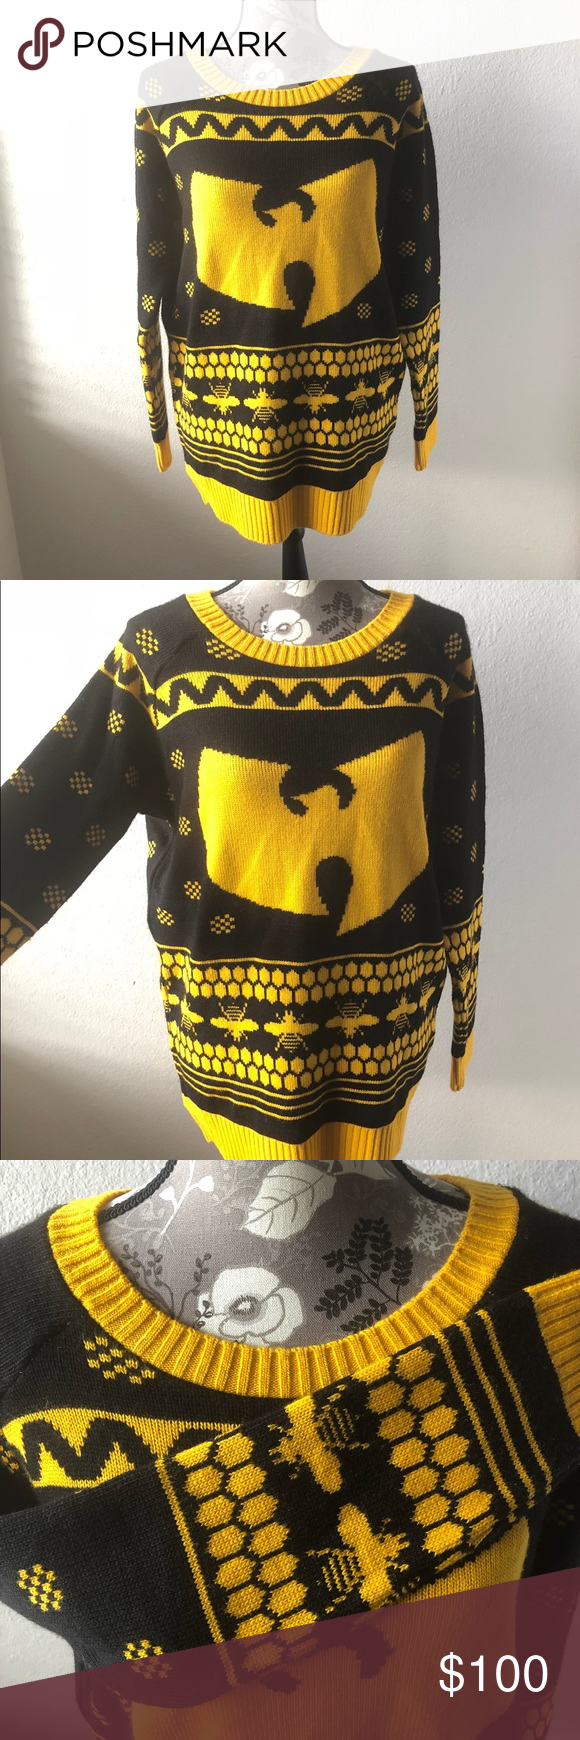 Wu Tang Clan Ugly Christmas Knit Sweater Nwt My Posh Picks